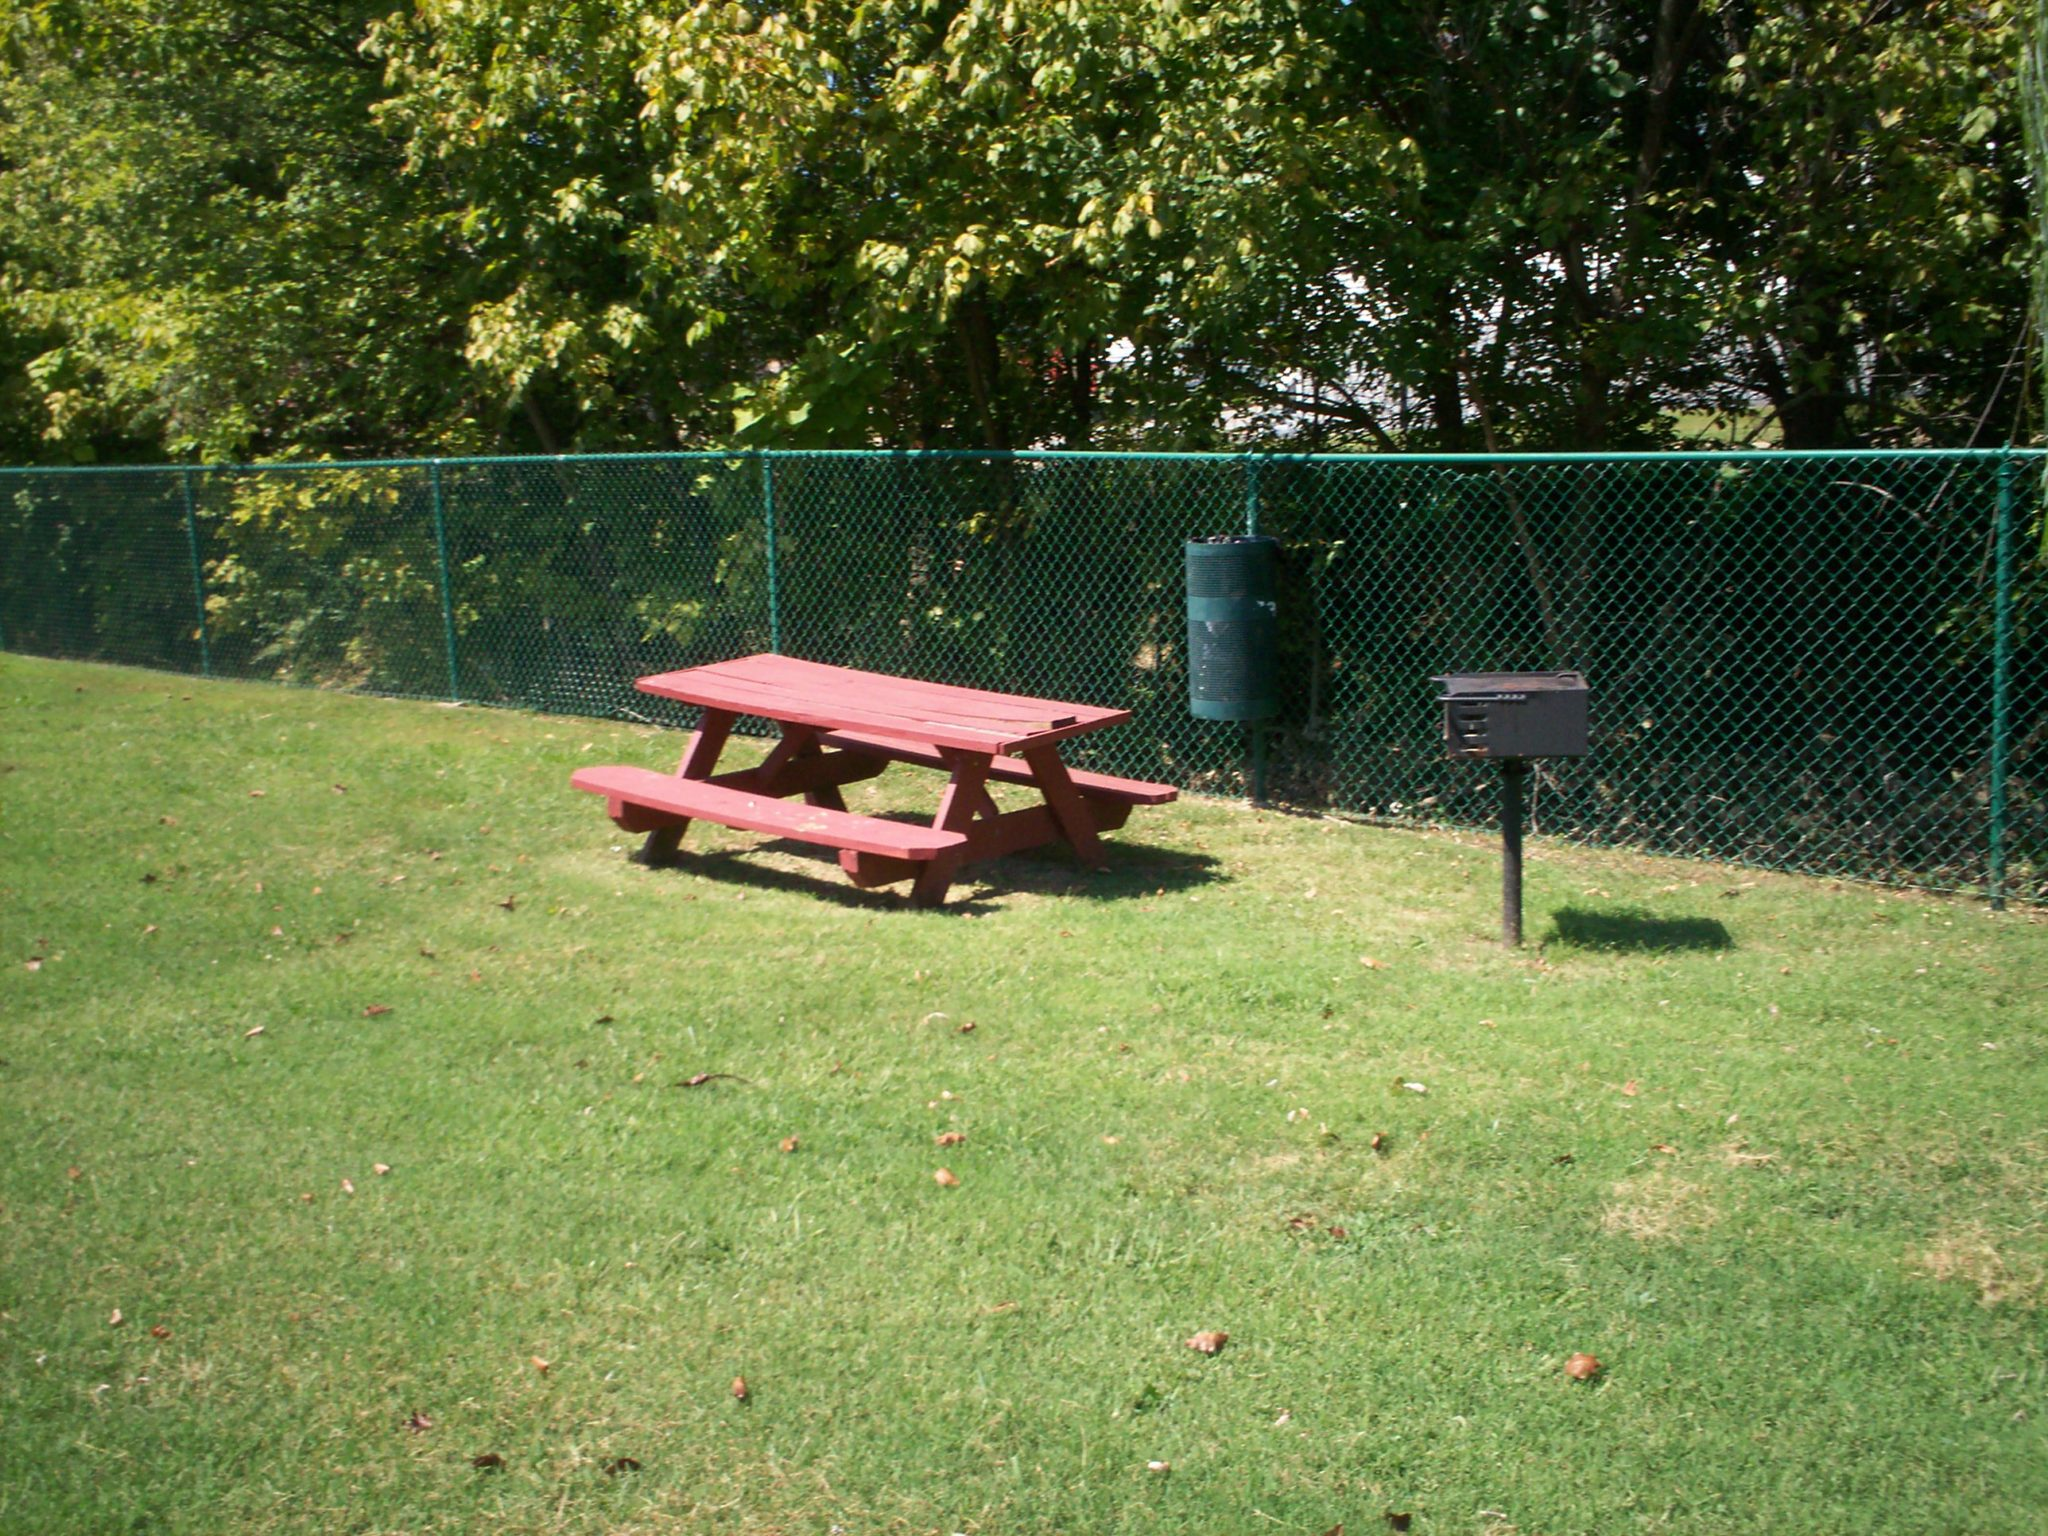 One Wilcox Place Kingsport TN picnic area